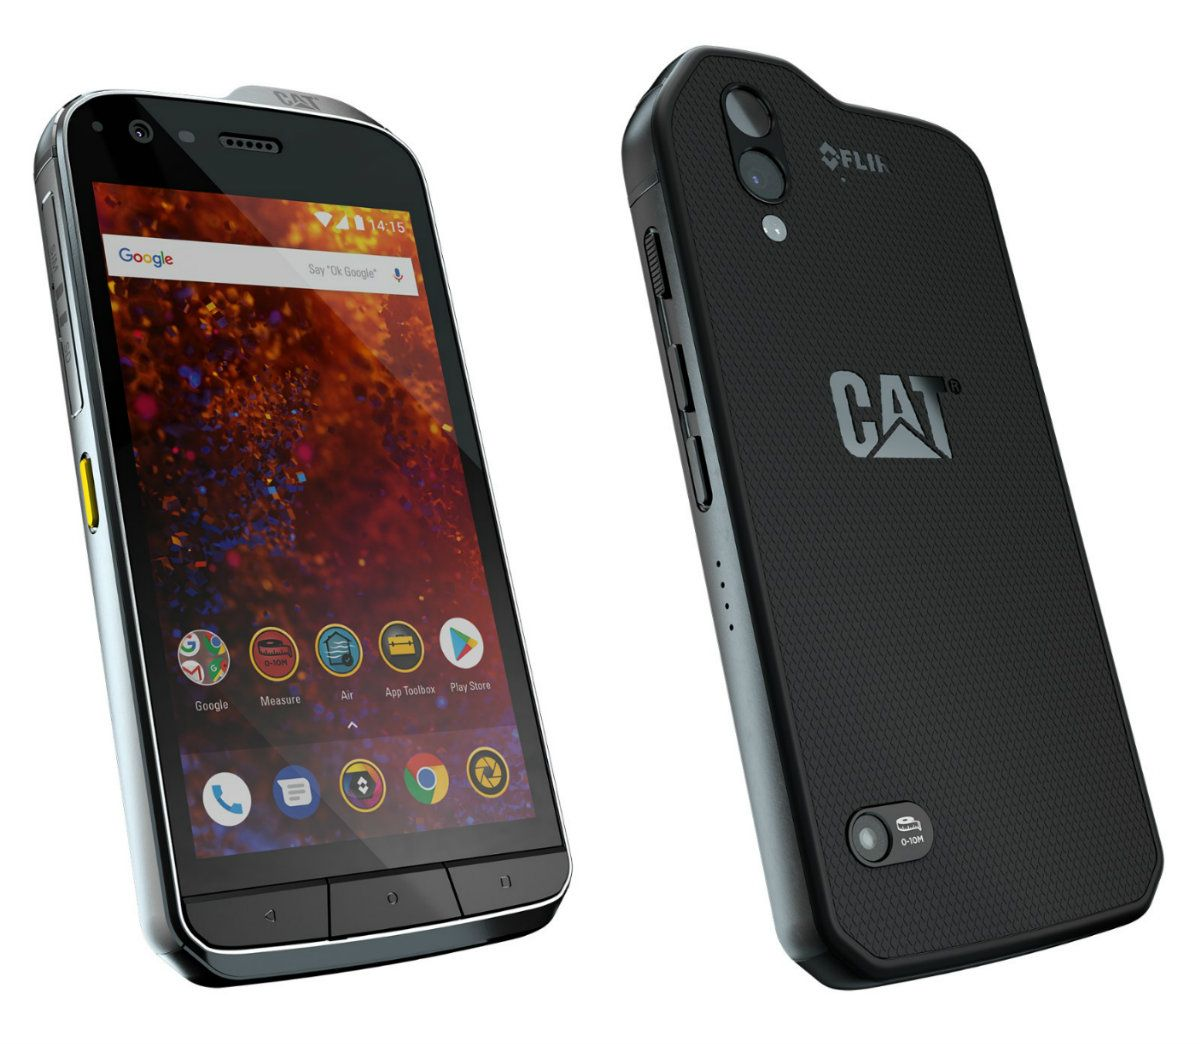 Cat S61 Announced With FLIR Thermal Camera, Snapdragon 630